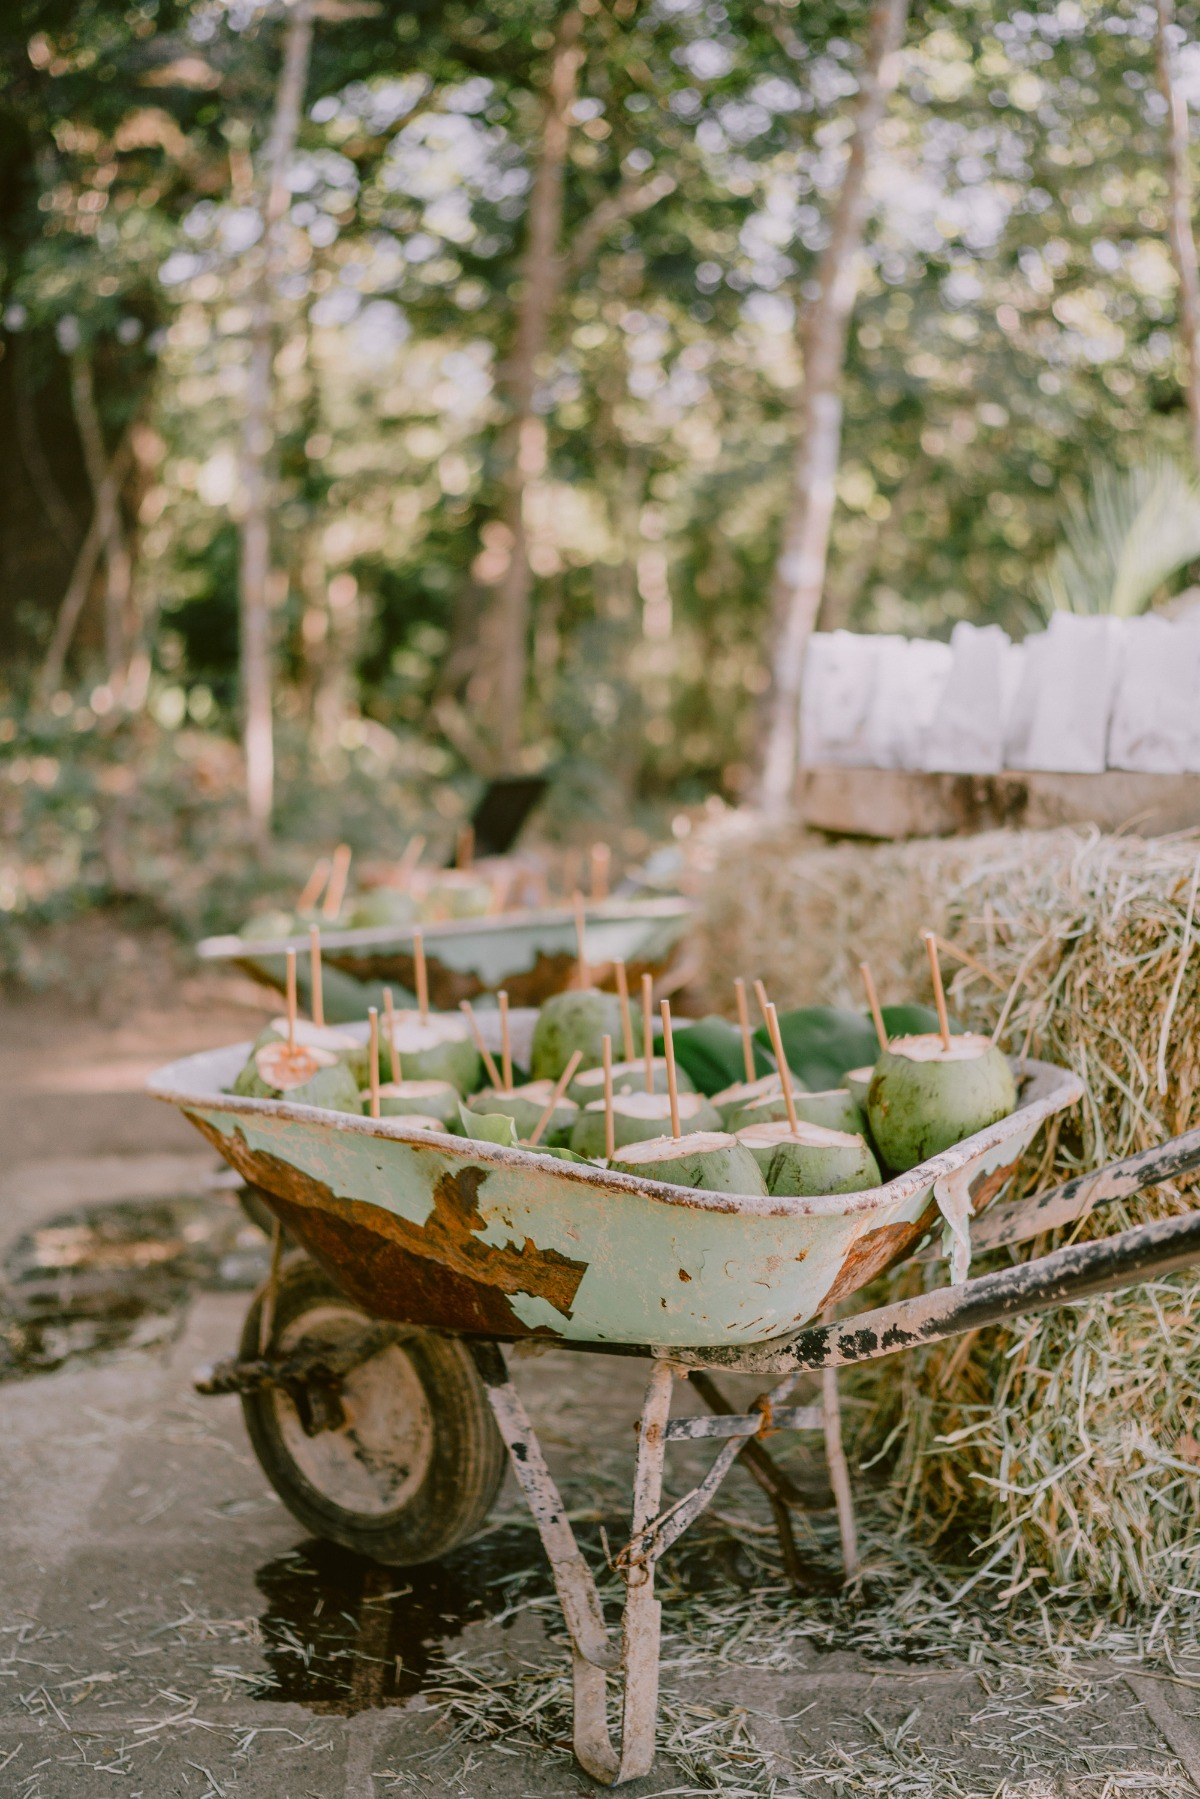 fresh coconuts with straws